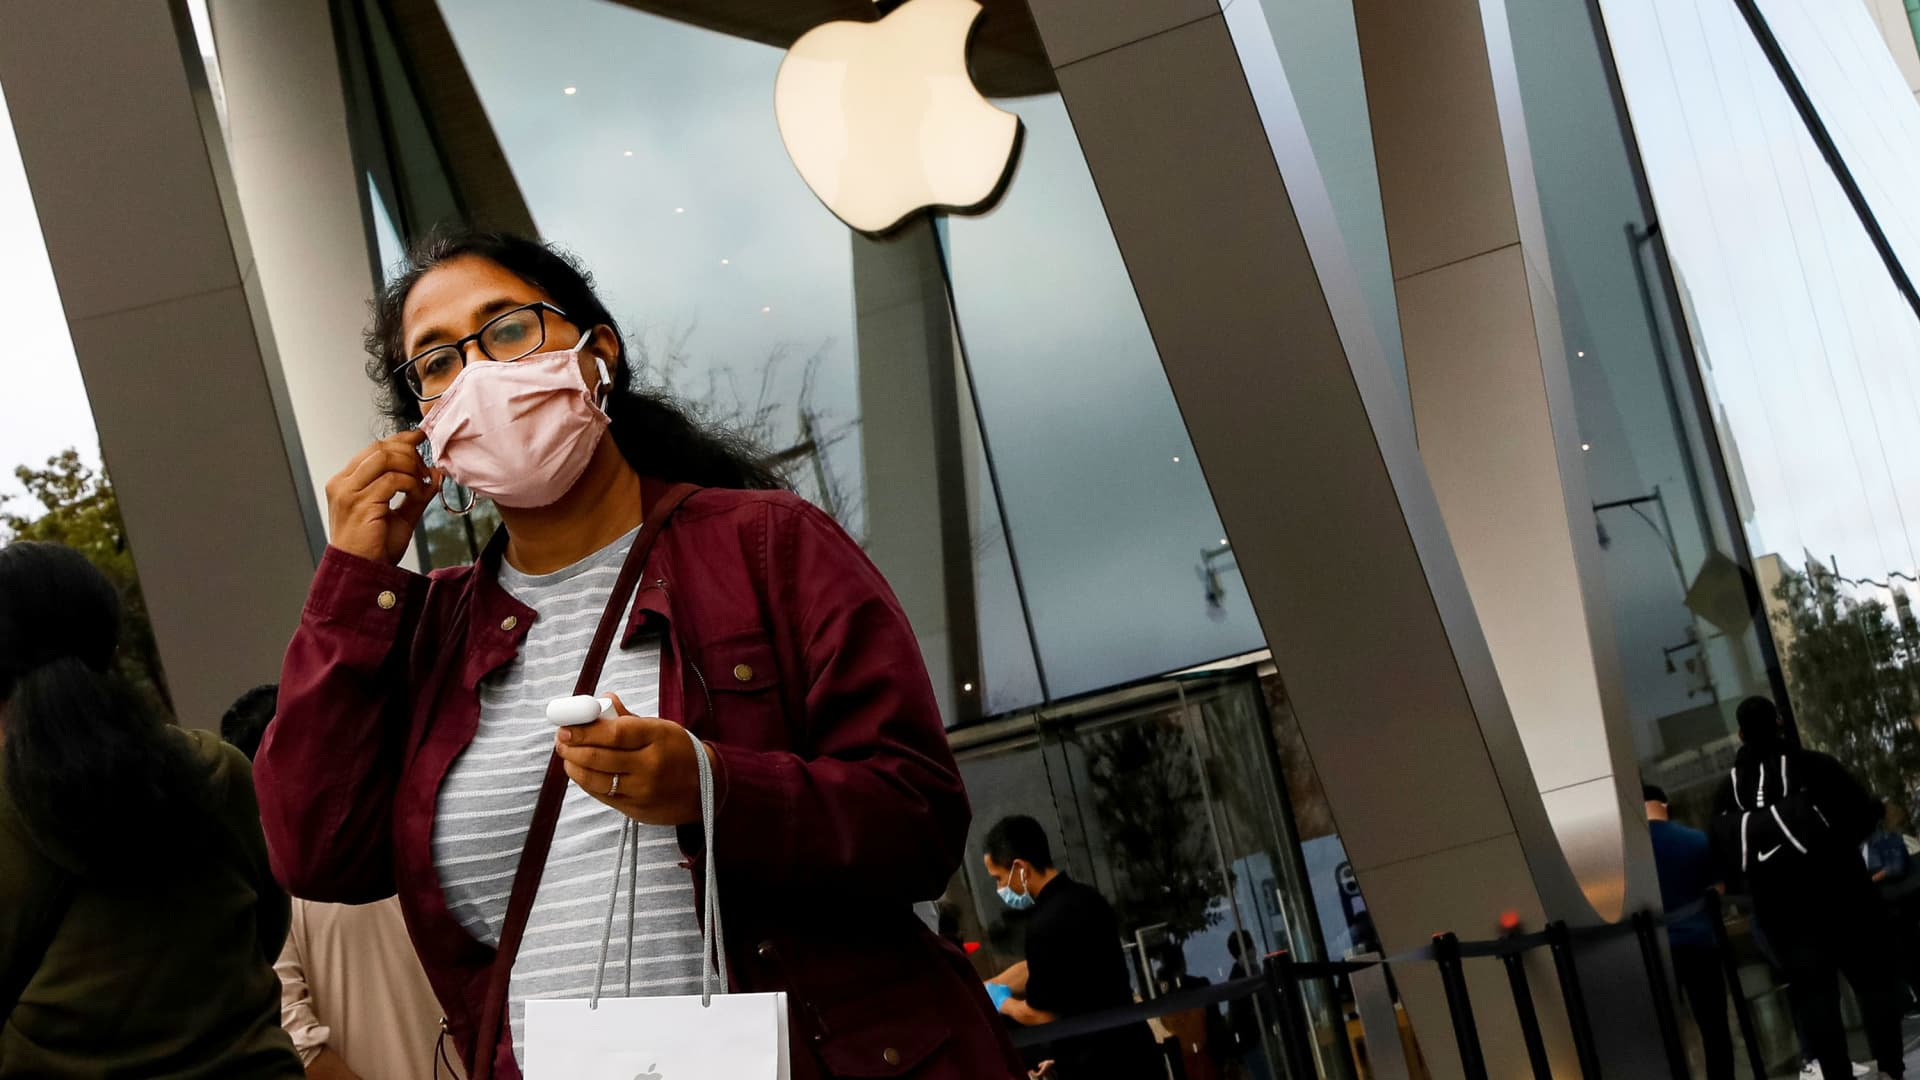 A customer exits after picking up Apple's new 5G iPhone 12 that went on sale, as the coronavirus disease (COVID-19) outbreak continues, at an Apple Store in Brooklyn, New York, October 23, 2020.